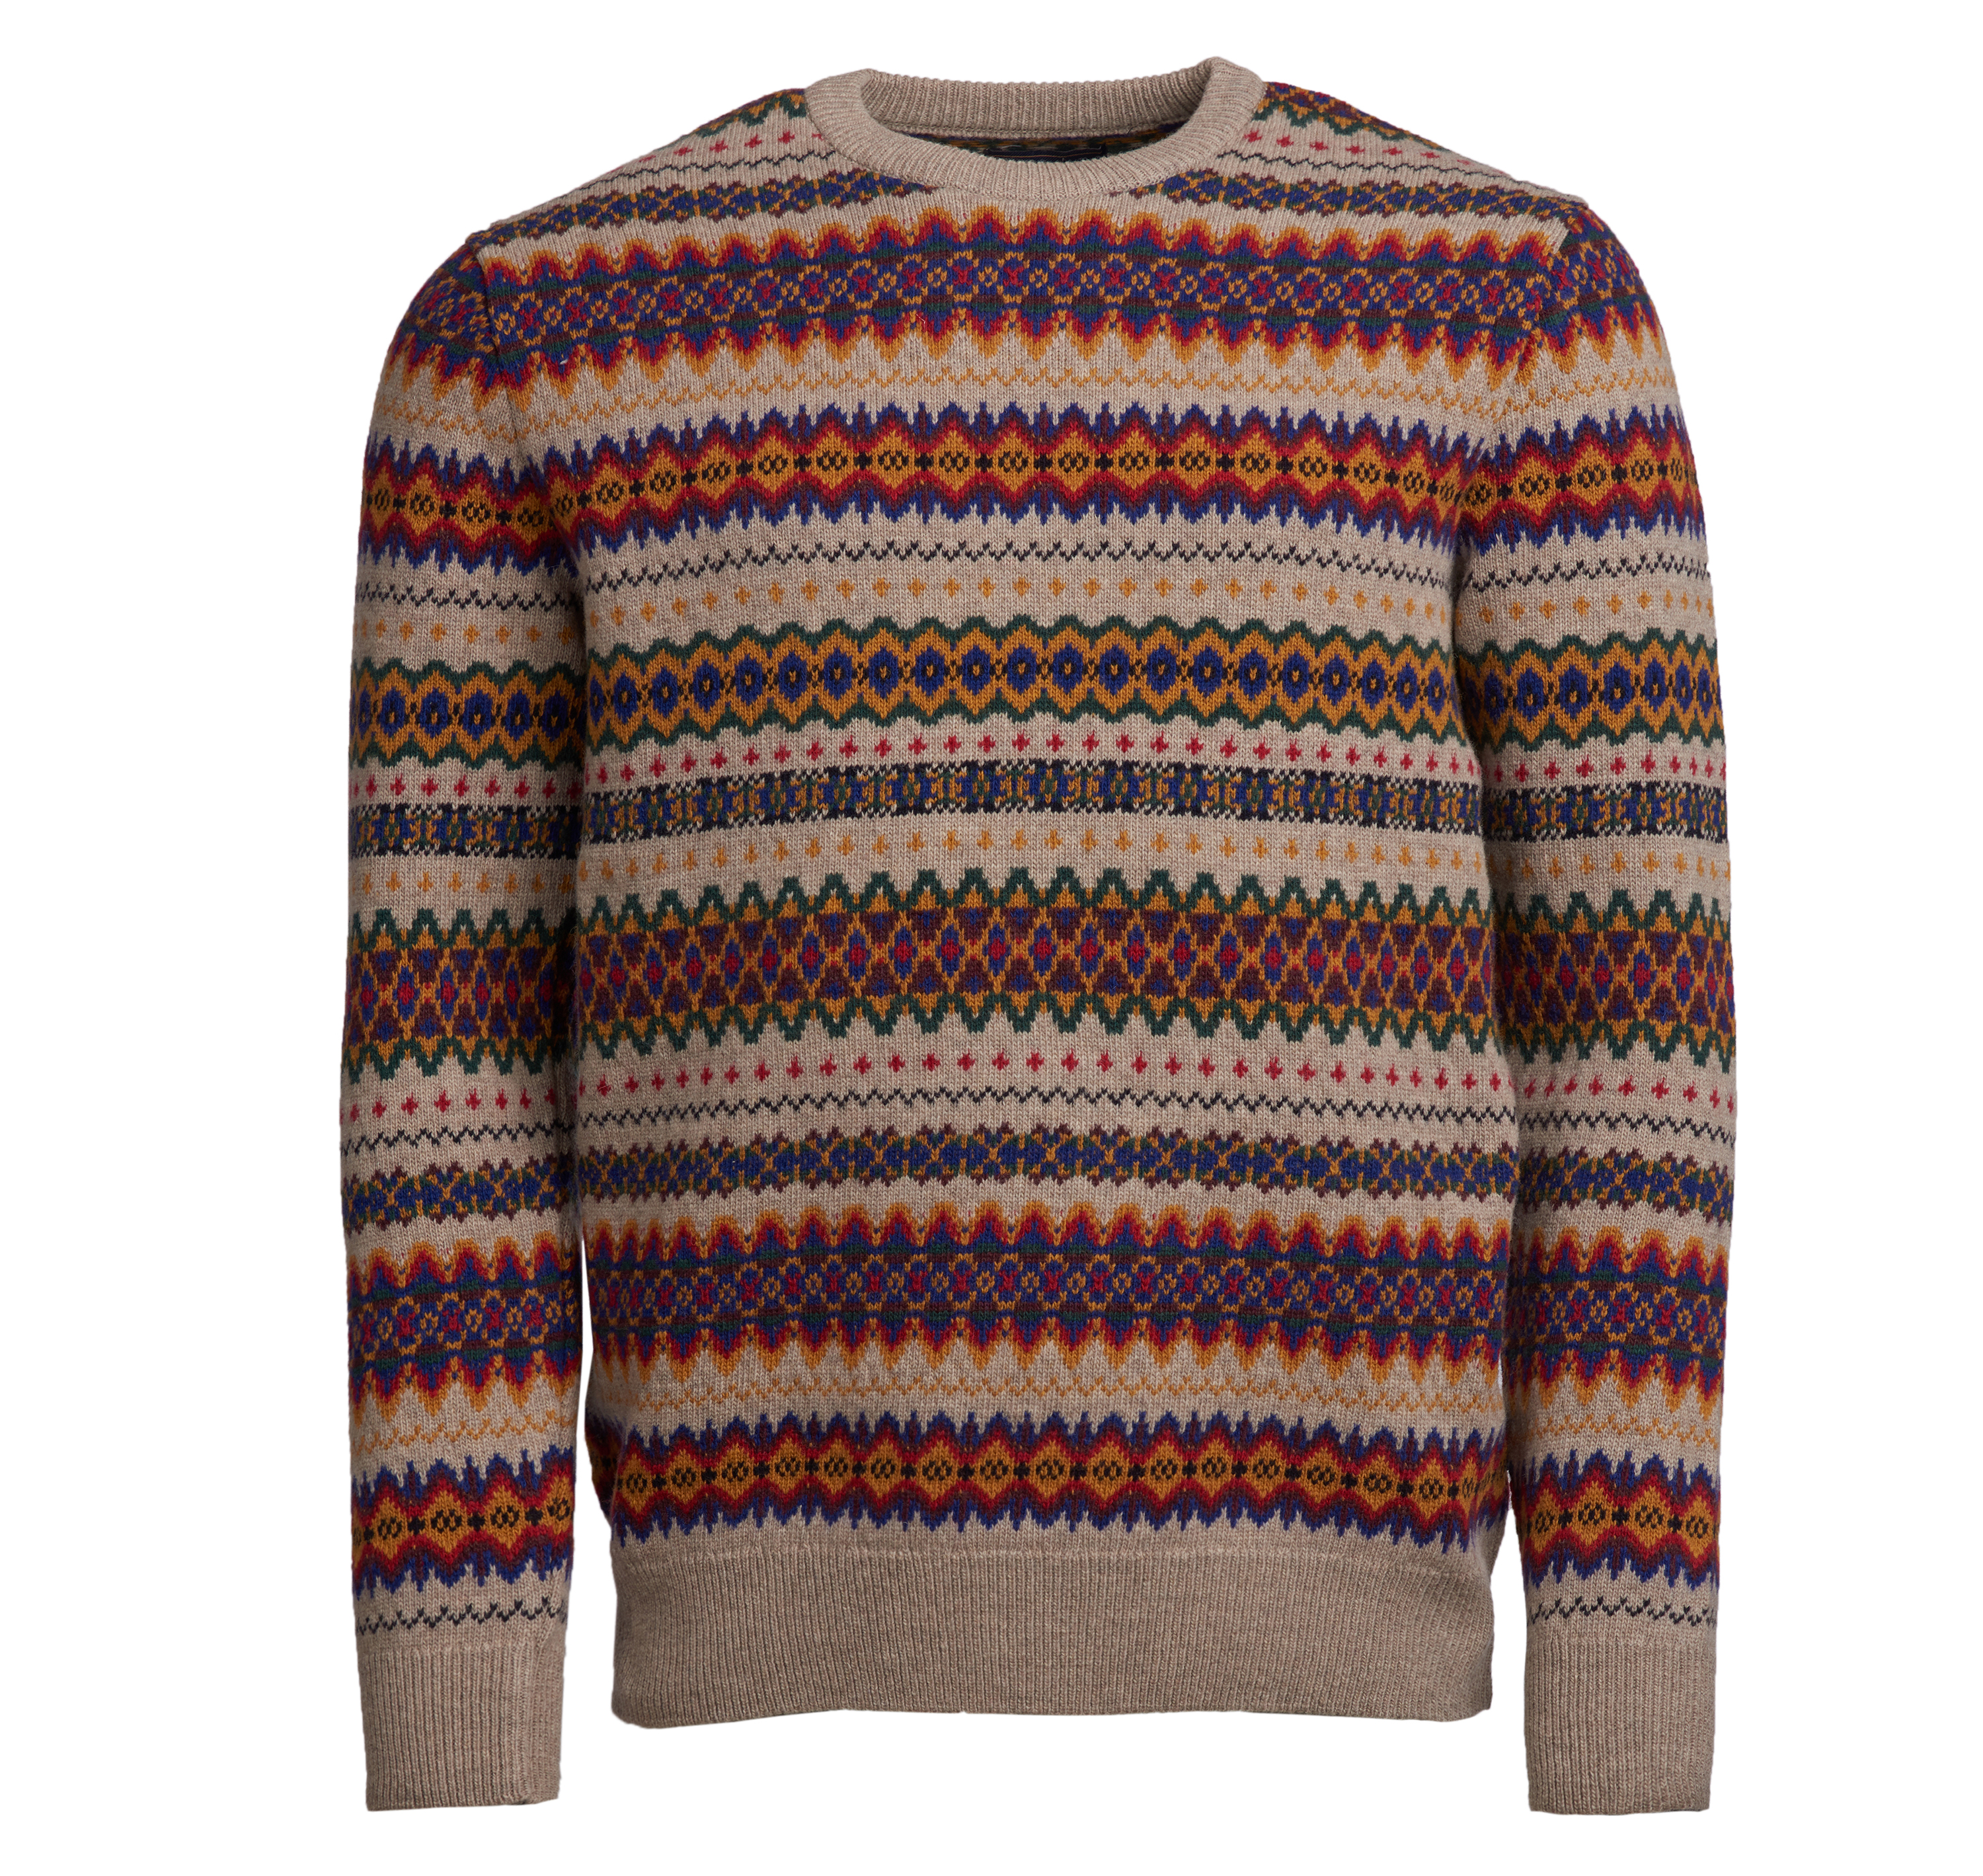 Barbour Barbour Case Fairisle Crew Neck Jumper Stone Barbour Lifestyle: From the Classic Tartan collection